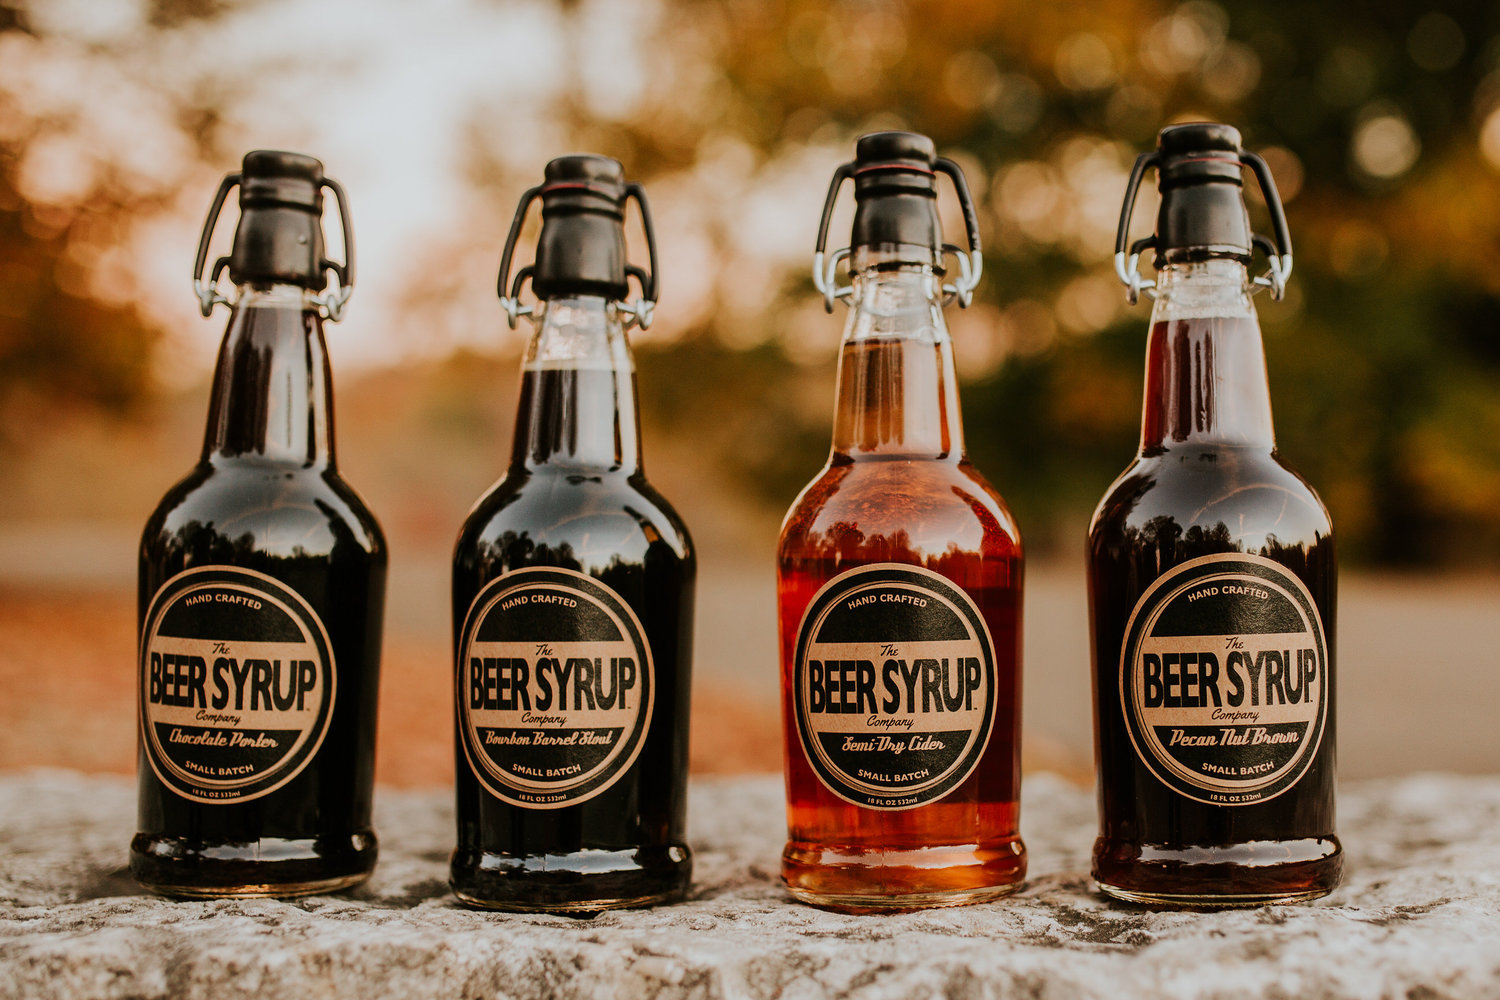 Beer Syrup is sold at Blooms